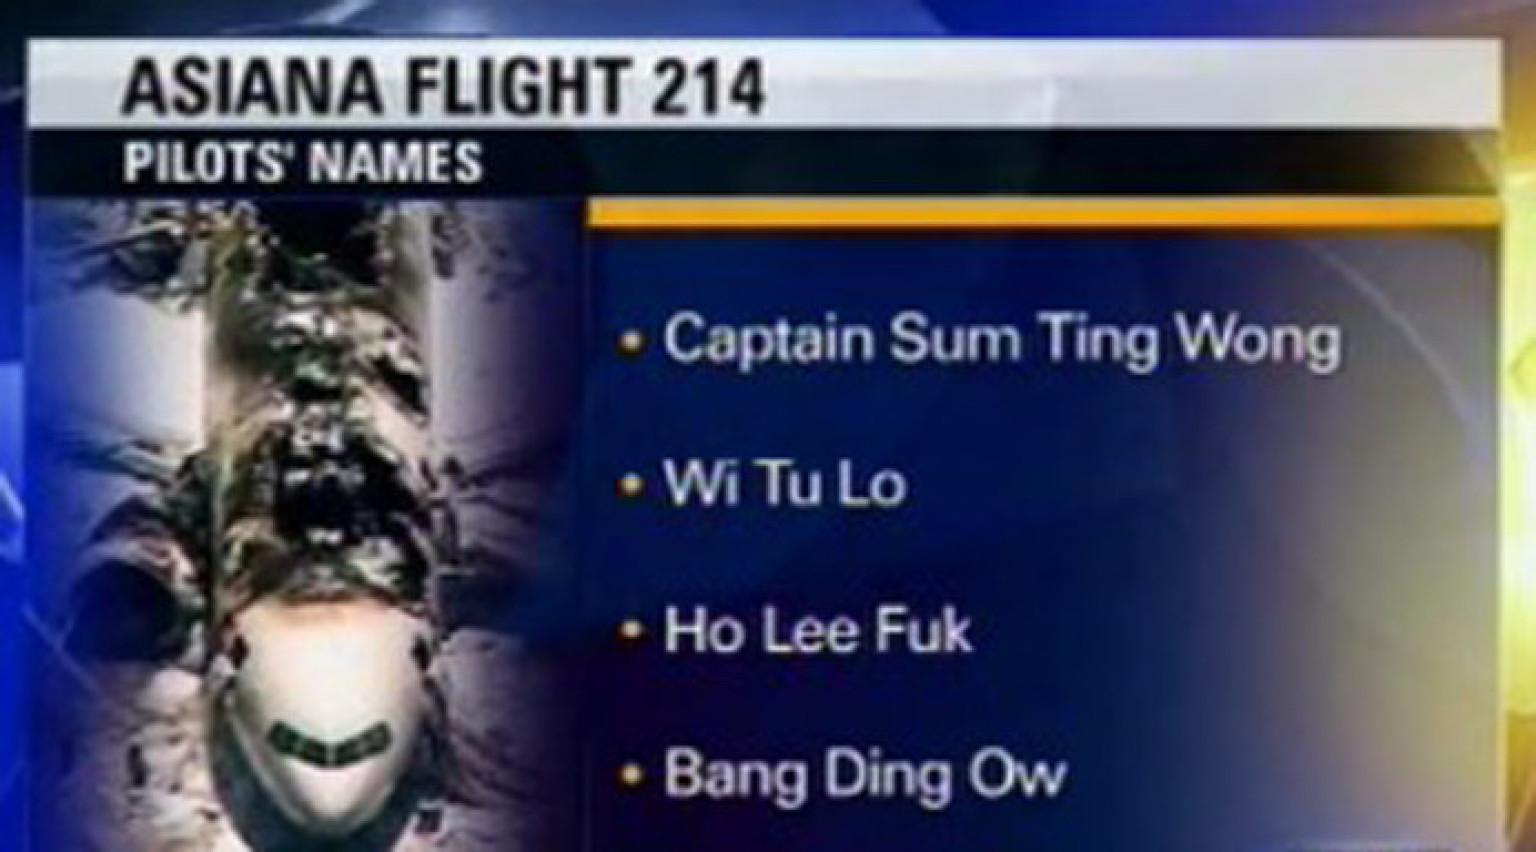 Funny Fake Names: KTVU Producer Fired Over Fake Pilot Names Says 'My Hard